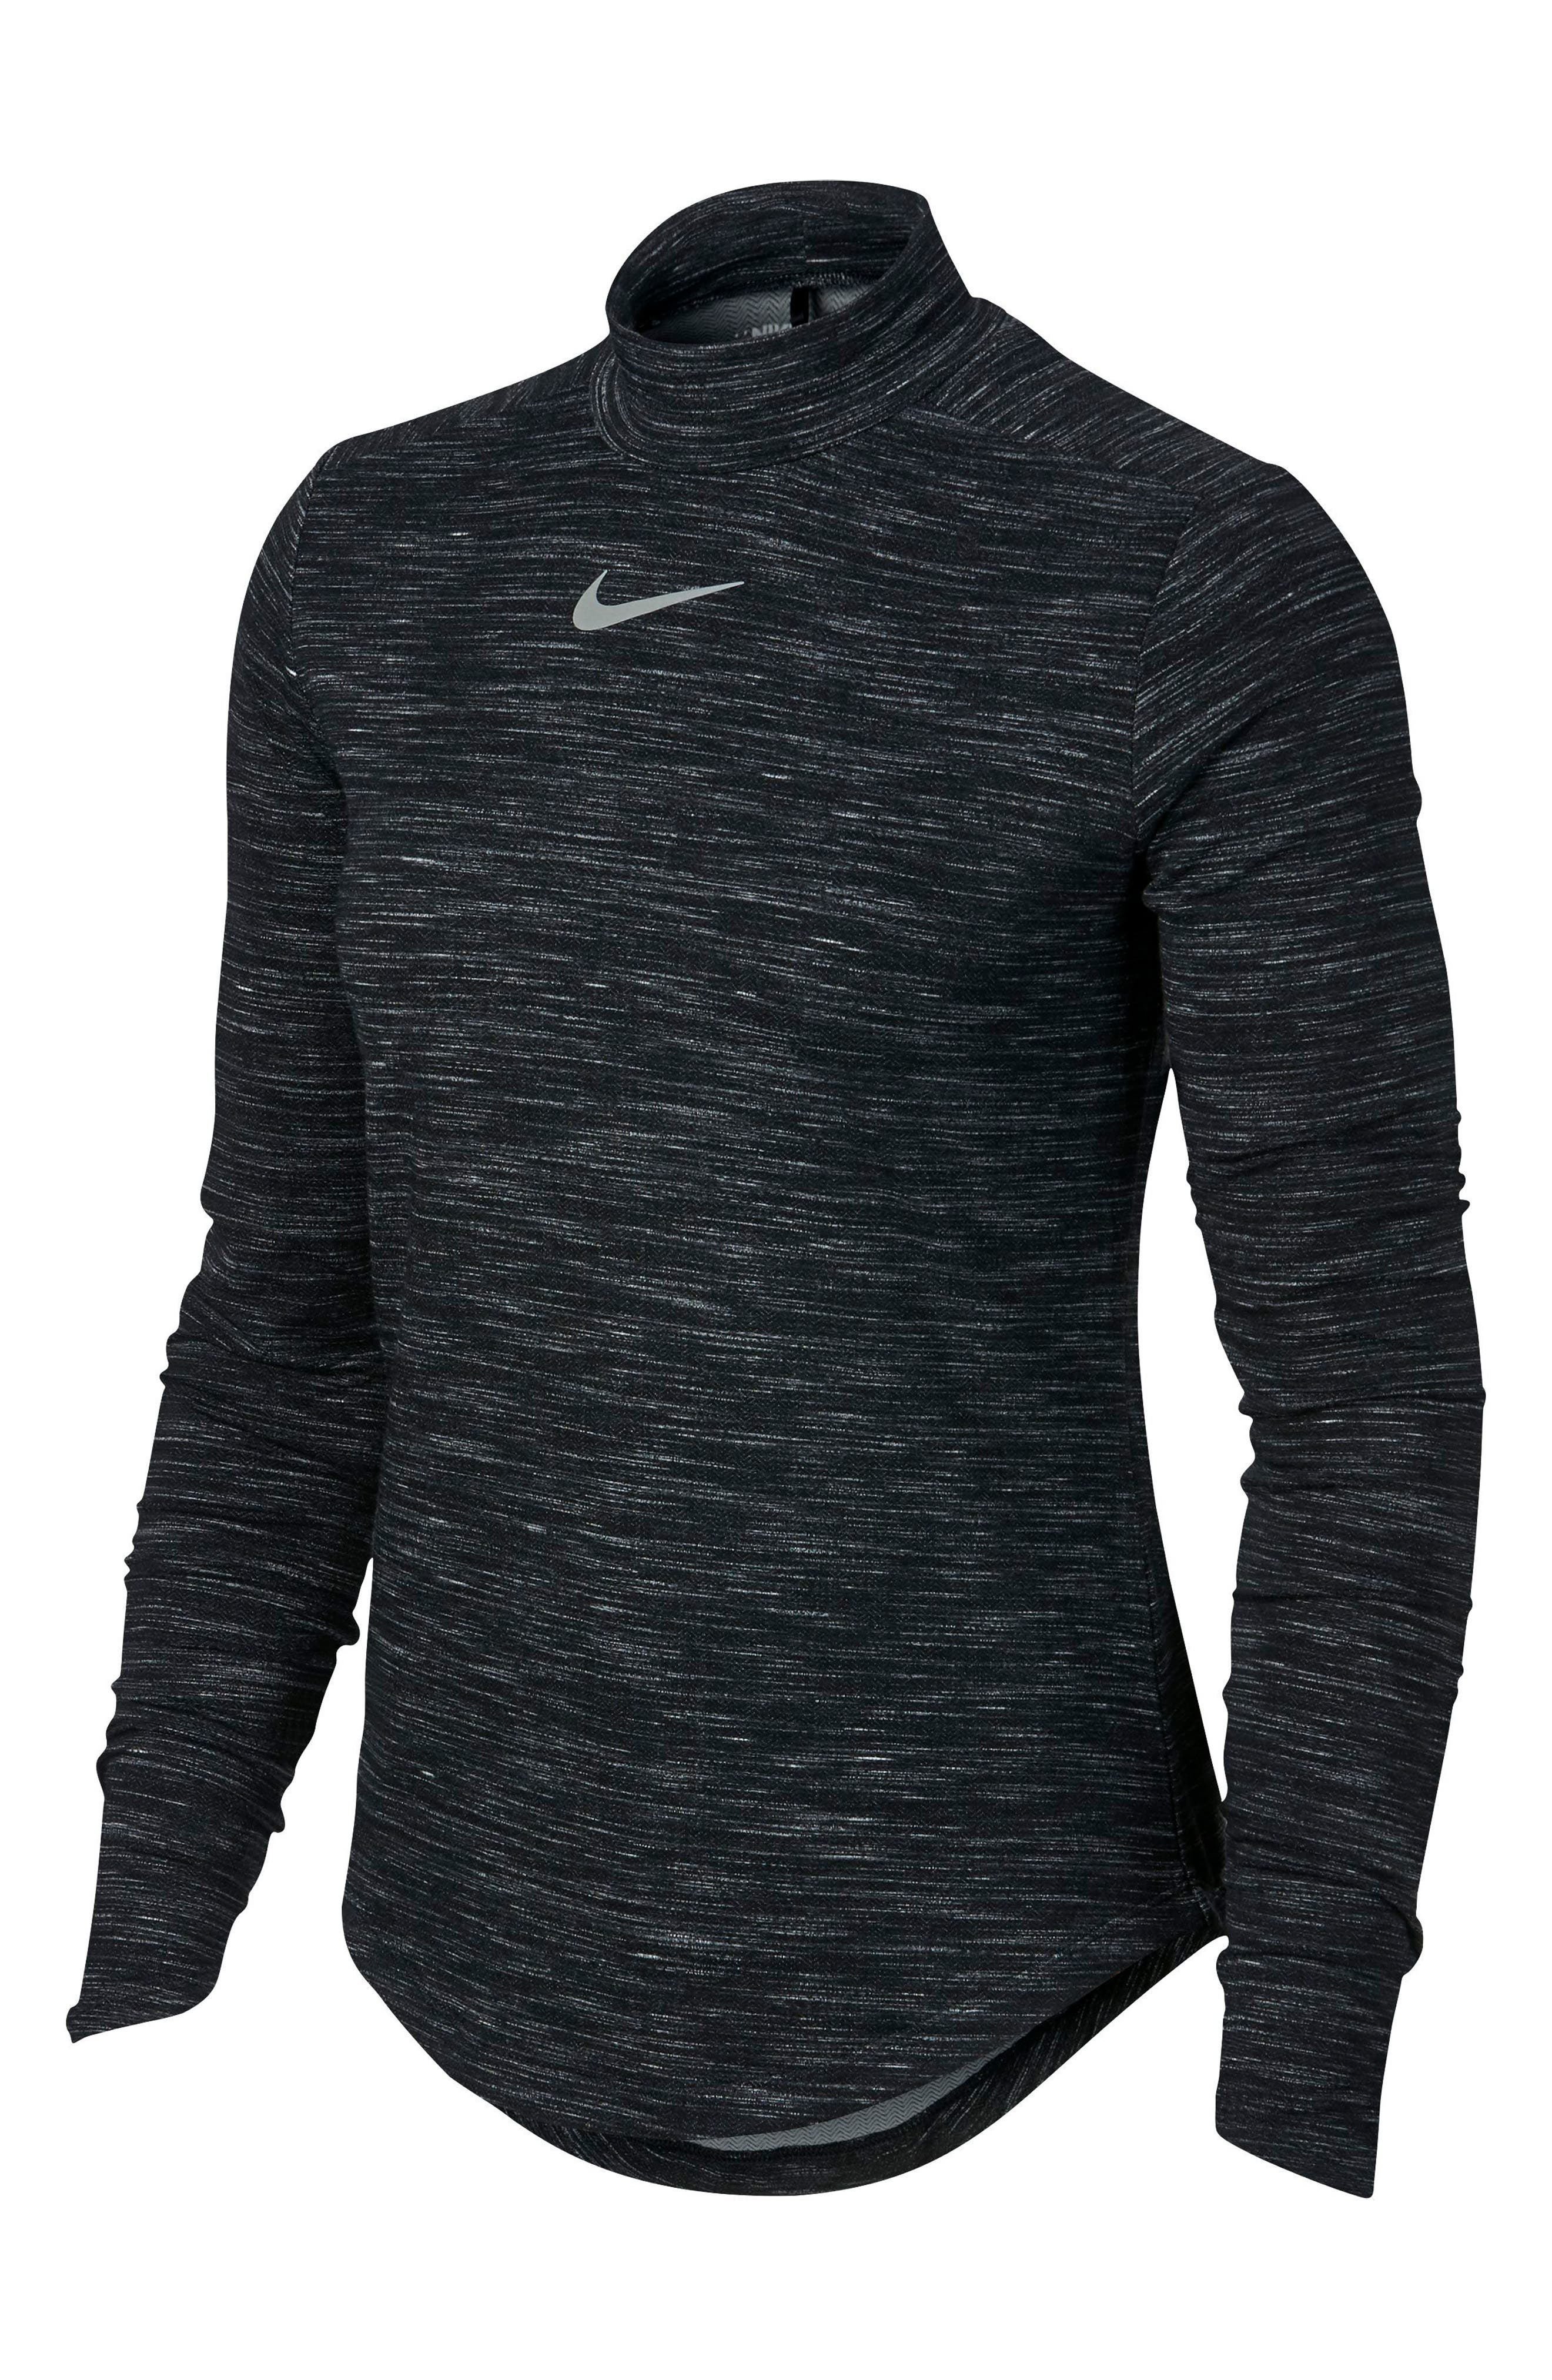 Dry Long Sleeve Golf Top,                             Alternate thumbnail 4, color,                             010